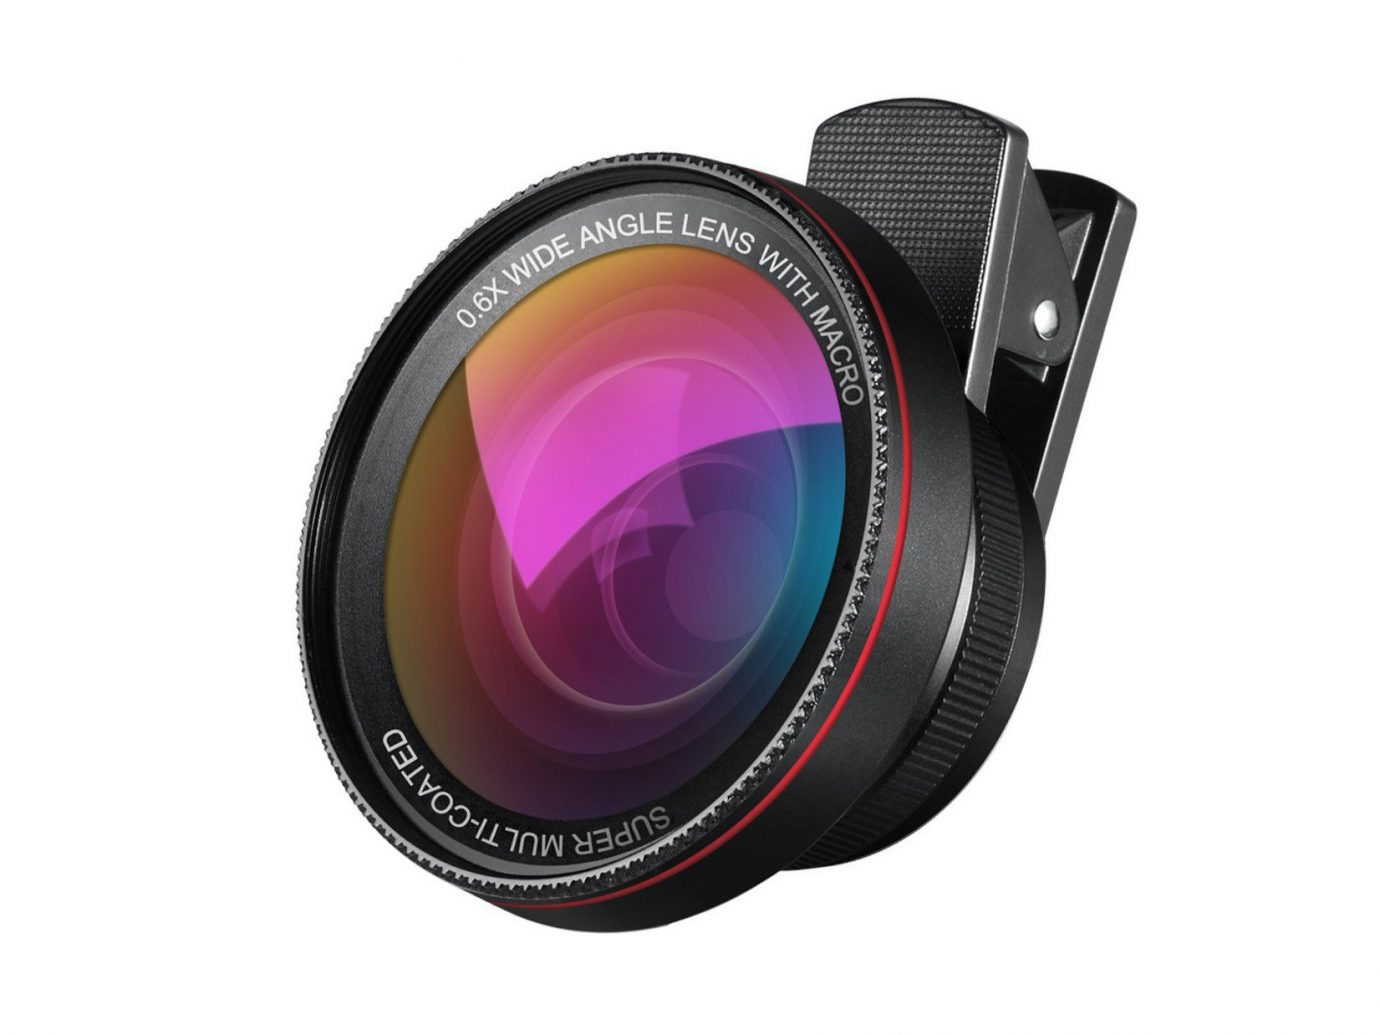 Travel Shop Travel Tech cameras & optics electronics camera lens lens camera photography magenta close up product single lens reflex camera product design digital camera mirrorless interchangeable lens camera digital slr lens cap camera accessory macro photography teleconverter fisheye lens